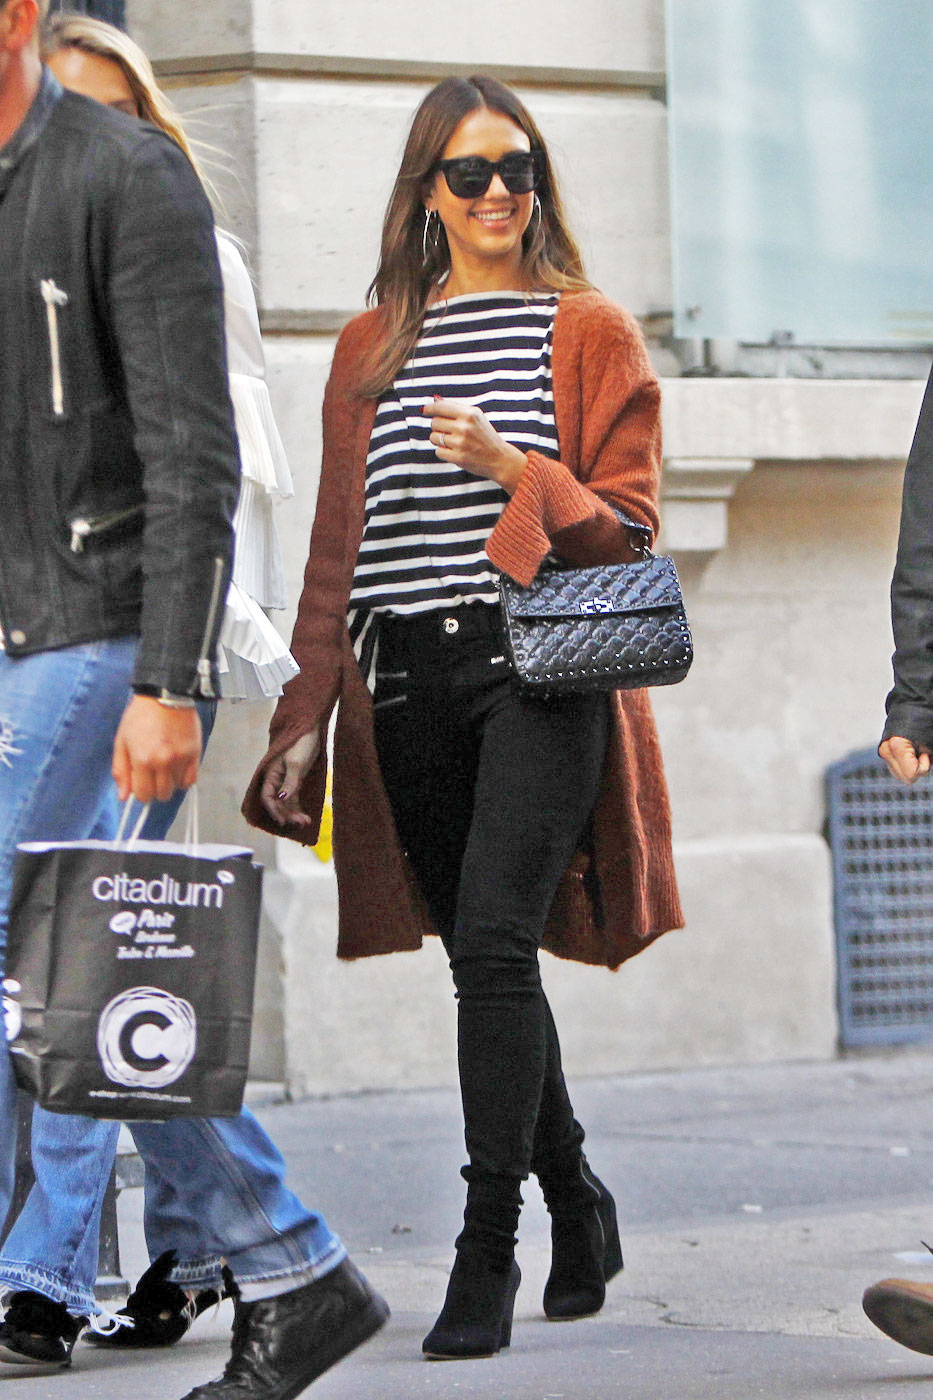 Jessica Alba wears a stripe top, zipper front skinny jeans and a rust colored cardigan while out and about in Paris.